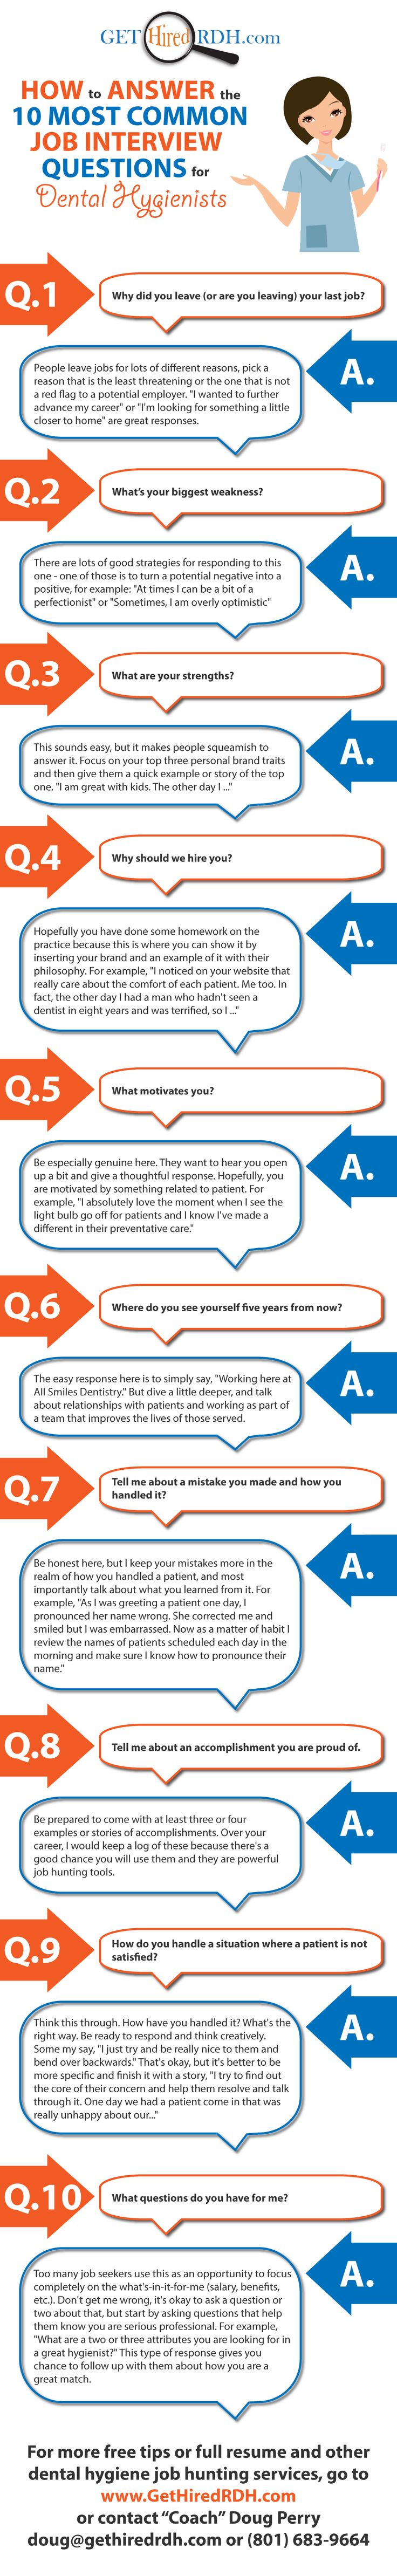 must see common job interview questions pins job interview how to answer the 10 most common interview questions for dental hygienists get more at gethiredrdh